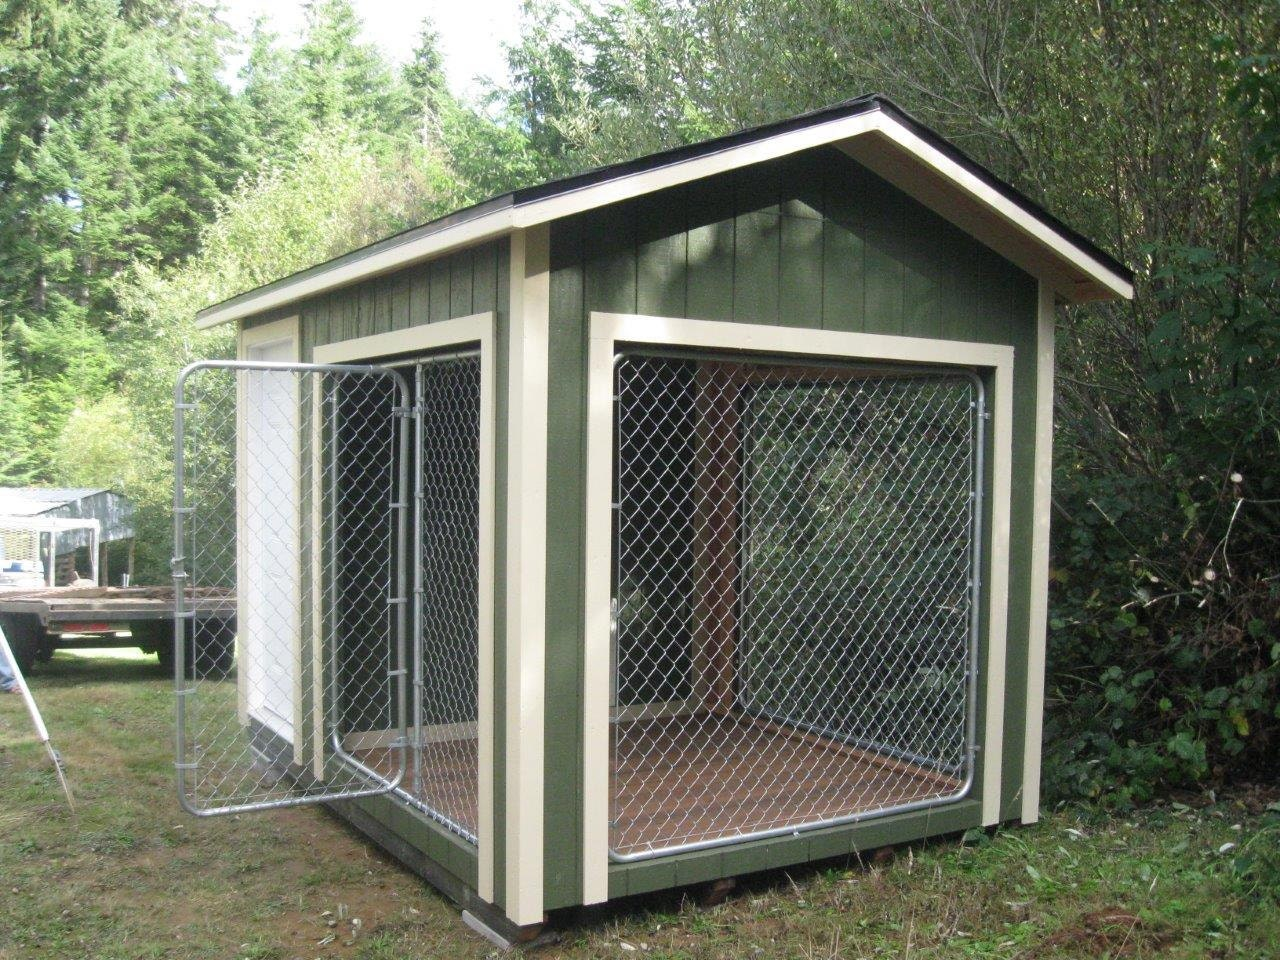 8x12 k9 kennel with 4x8 dog house and 8x8 kennel built to for Building a dog kennel business